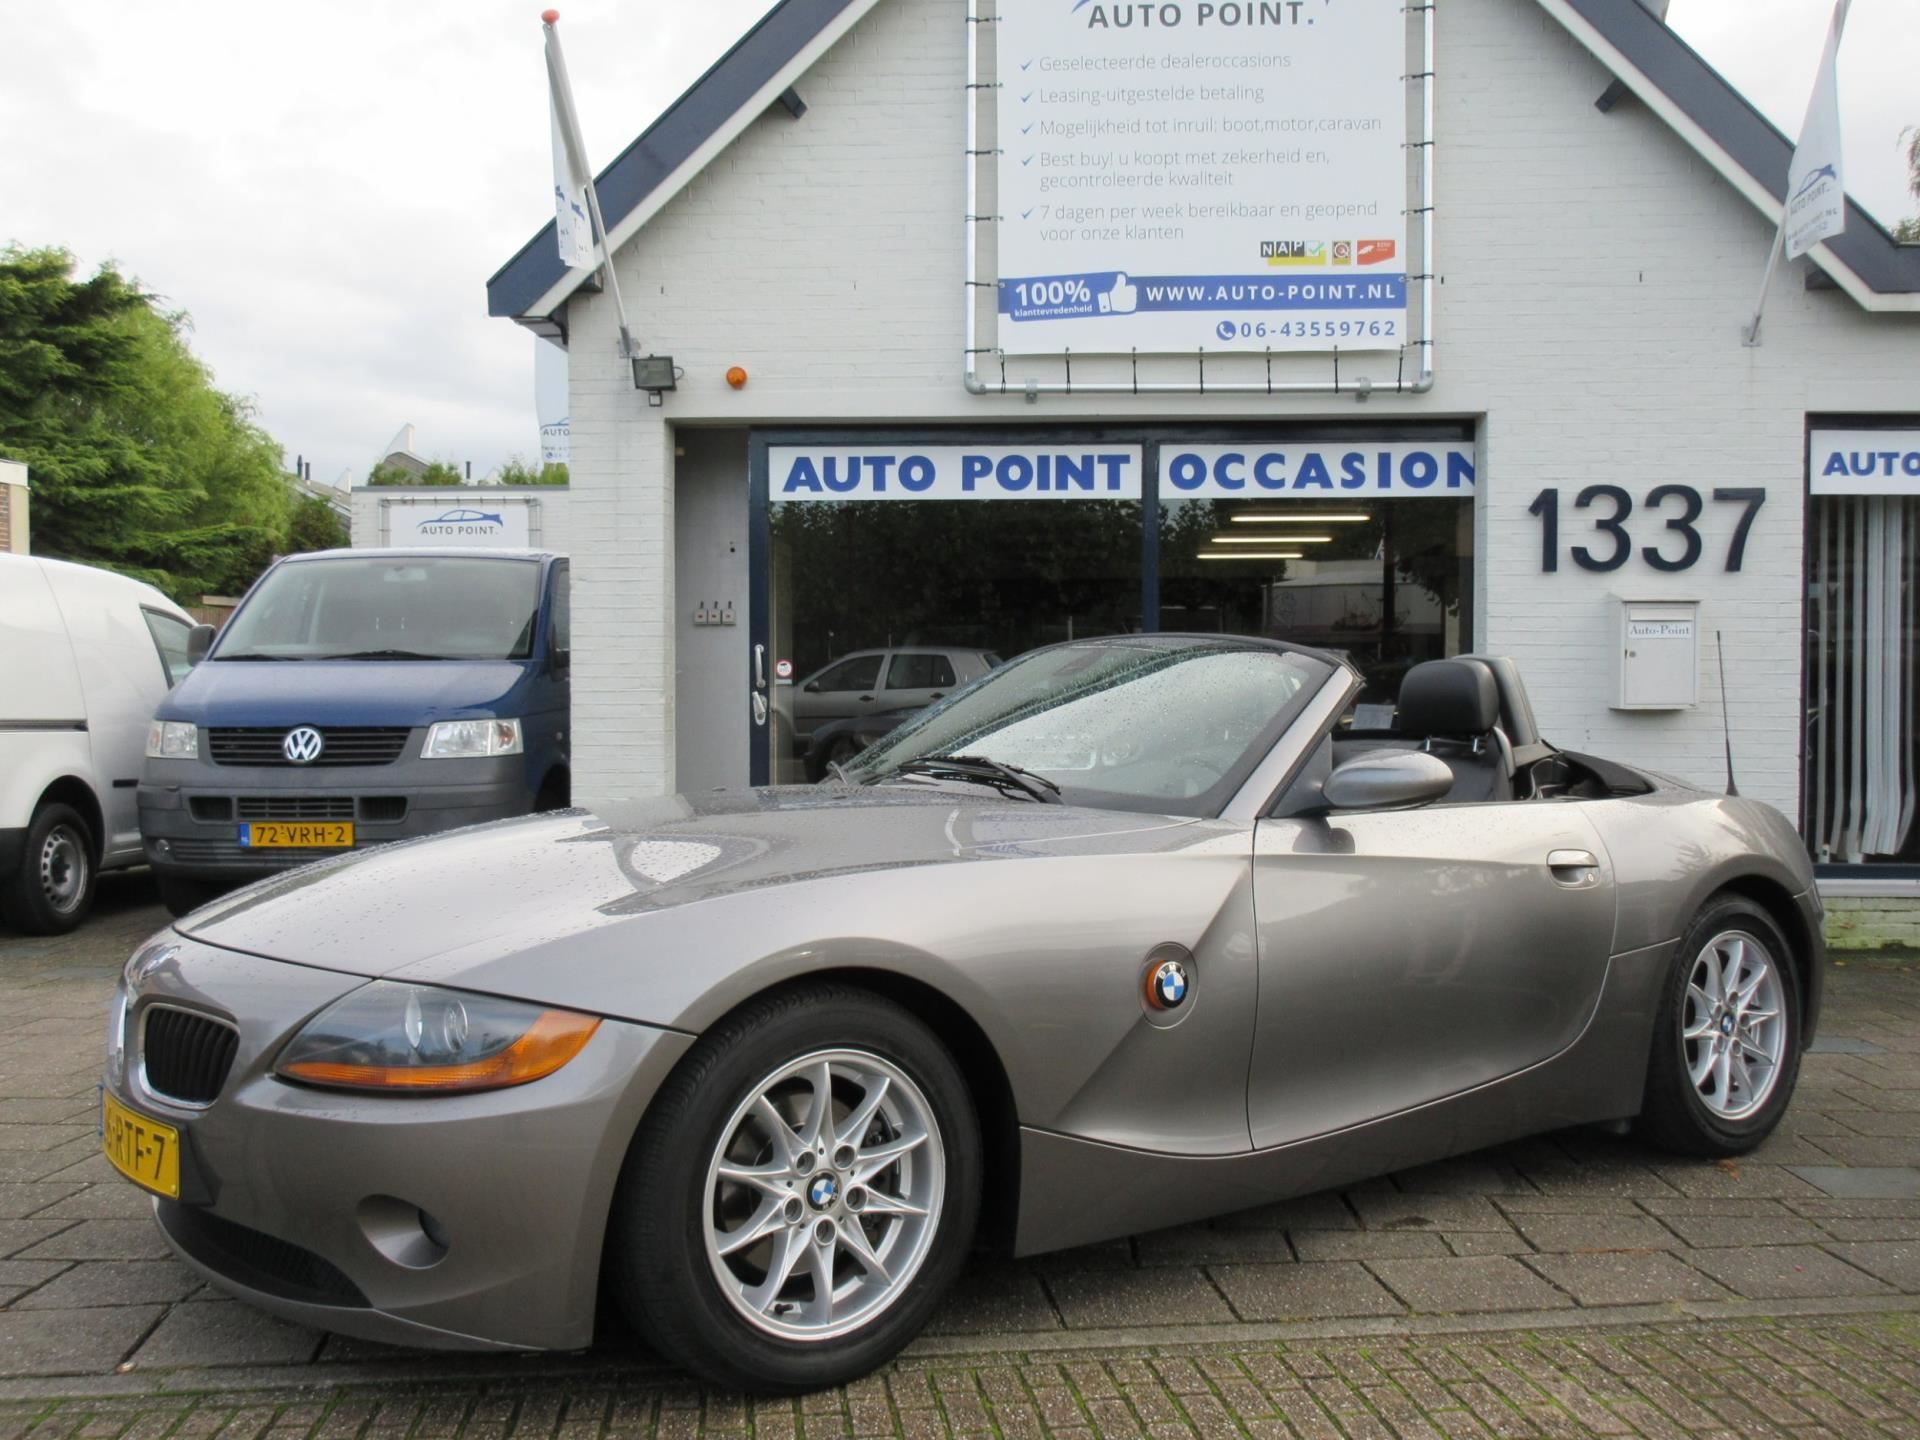 BMW Z4 Roadster occasion - Auto Point